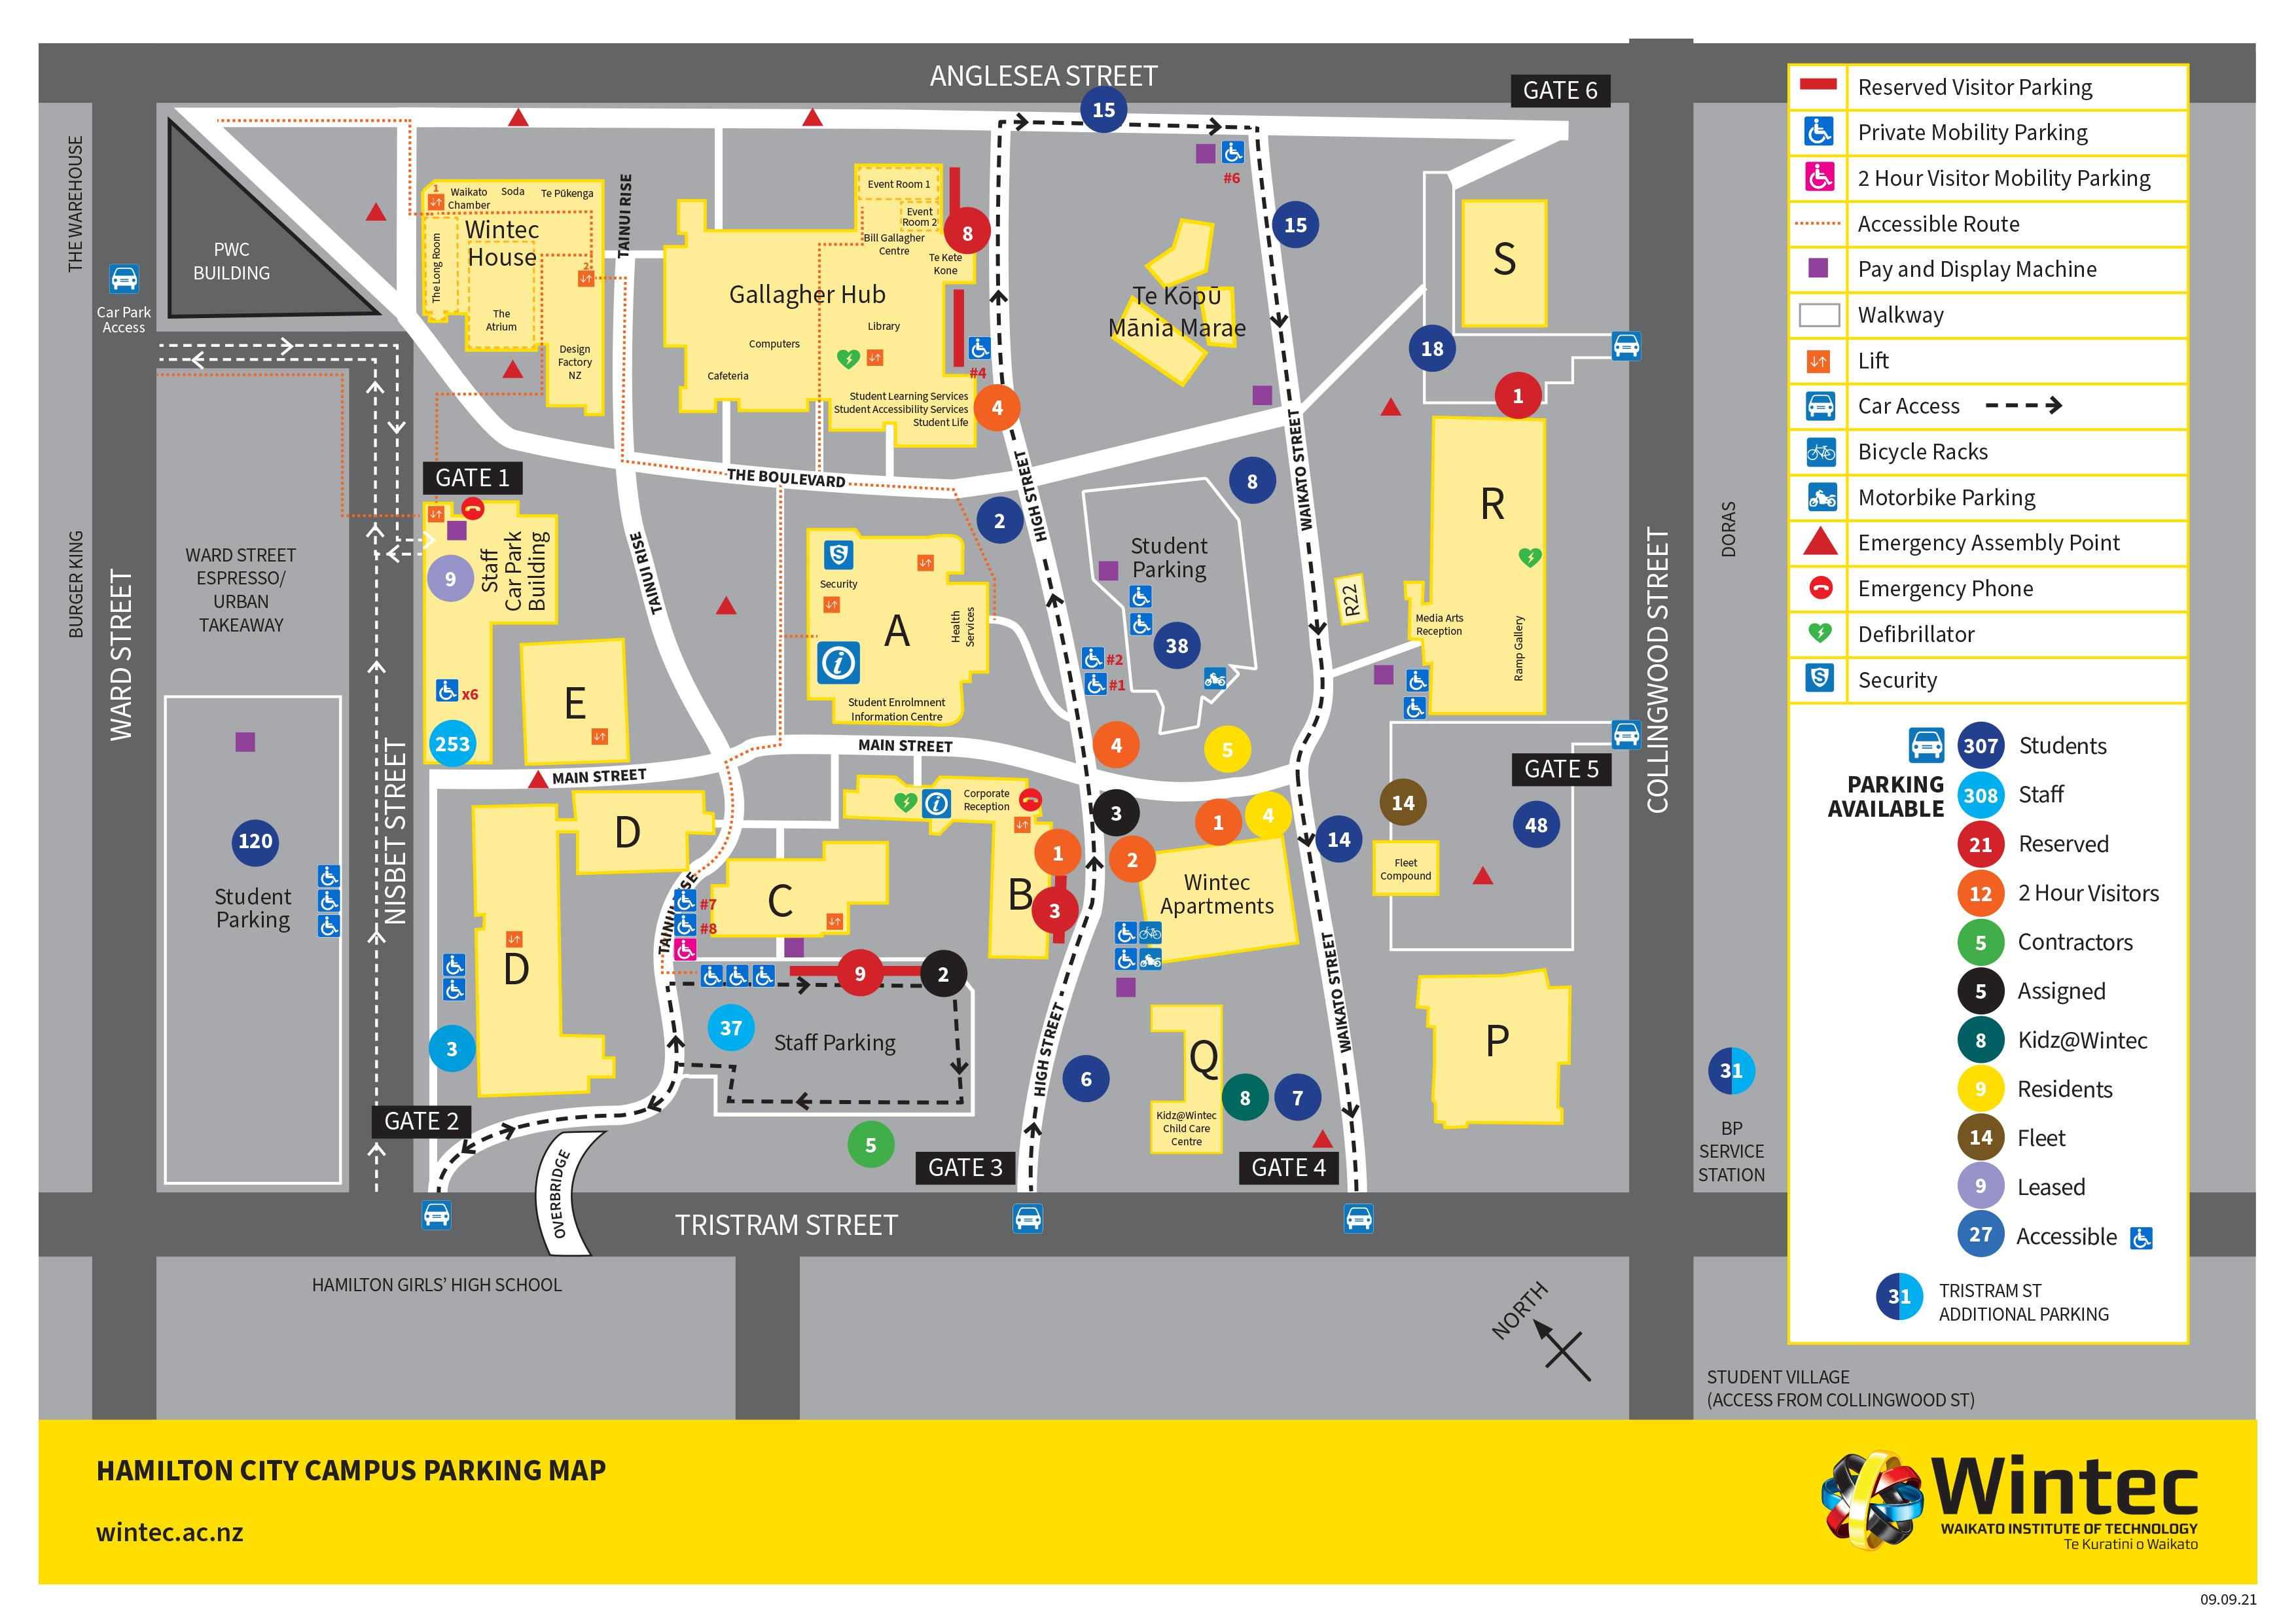 City campus parking map